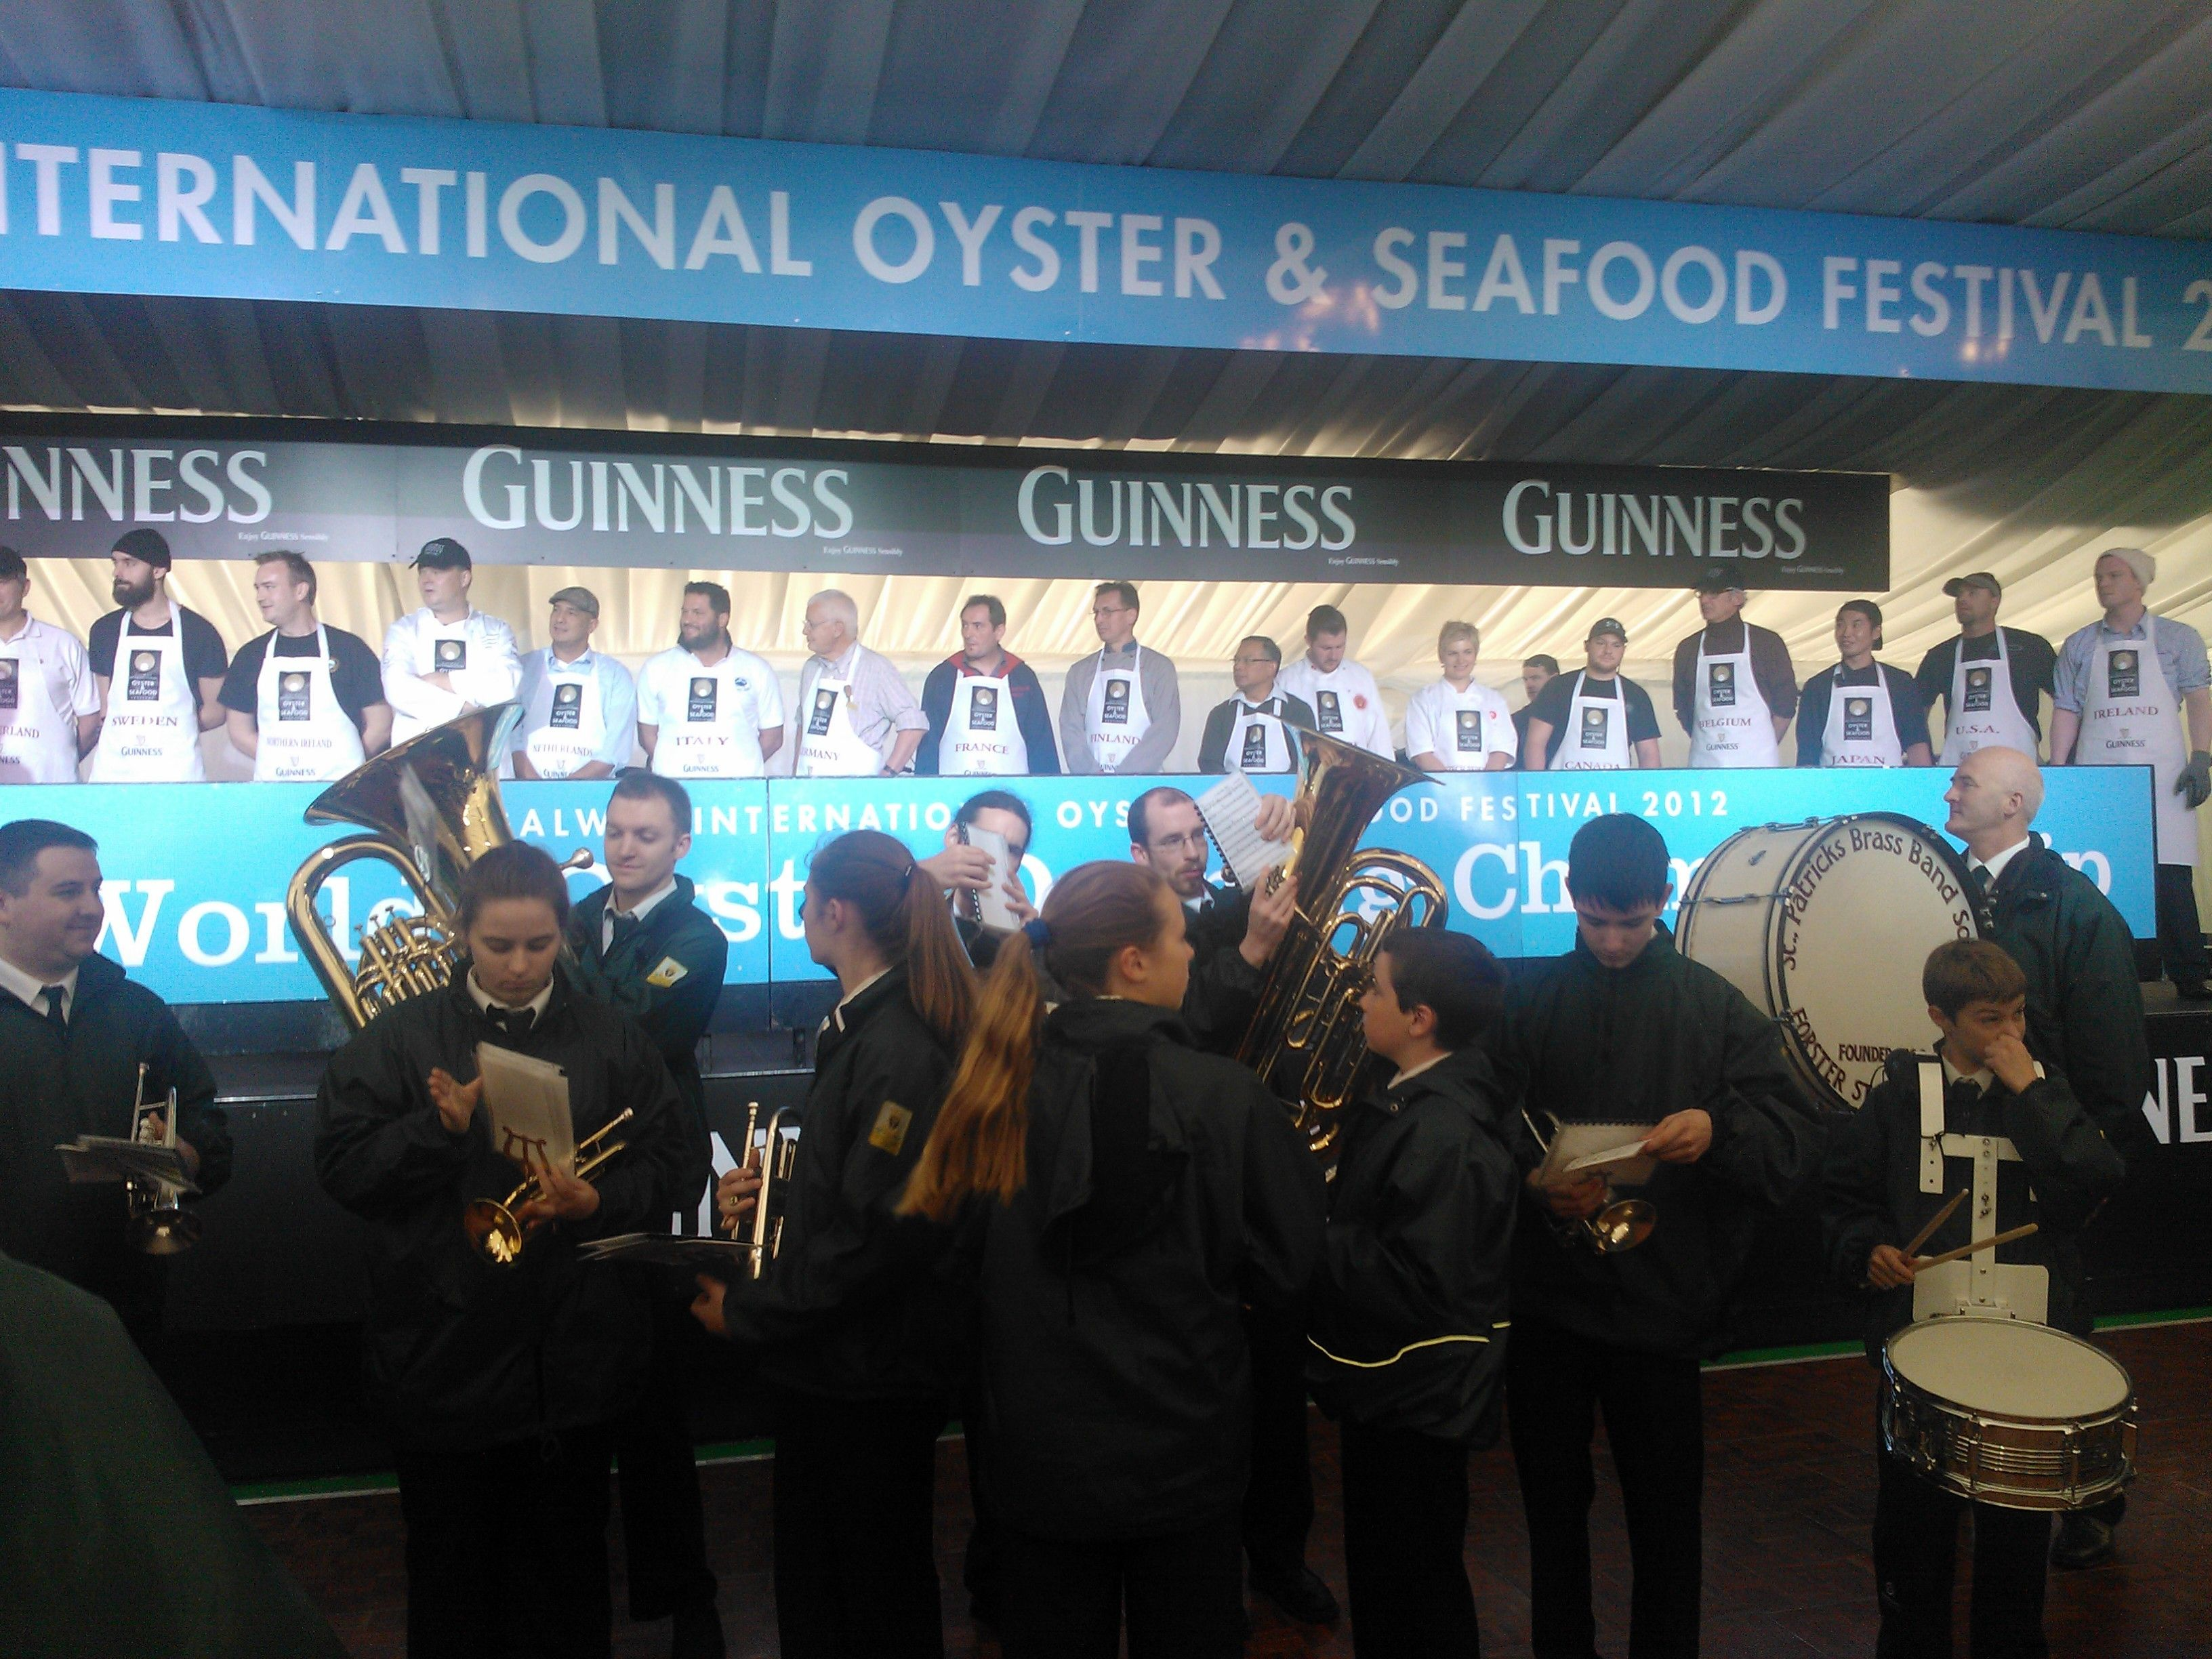 Great Fun Today At The Galway International Oyster Festival With